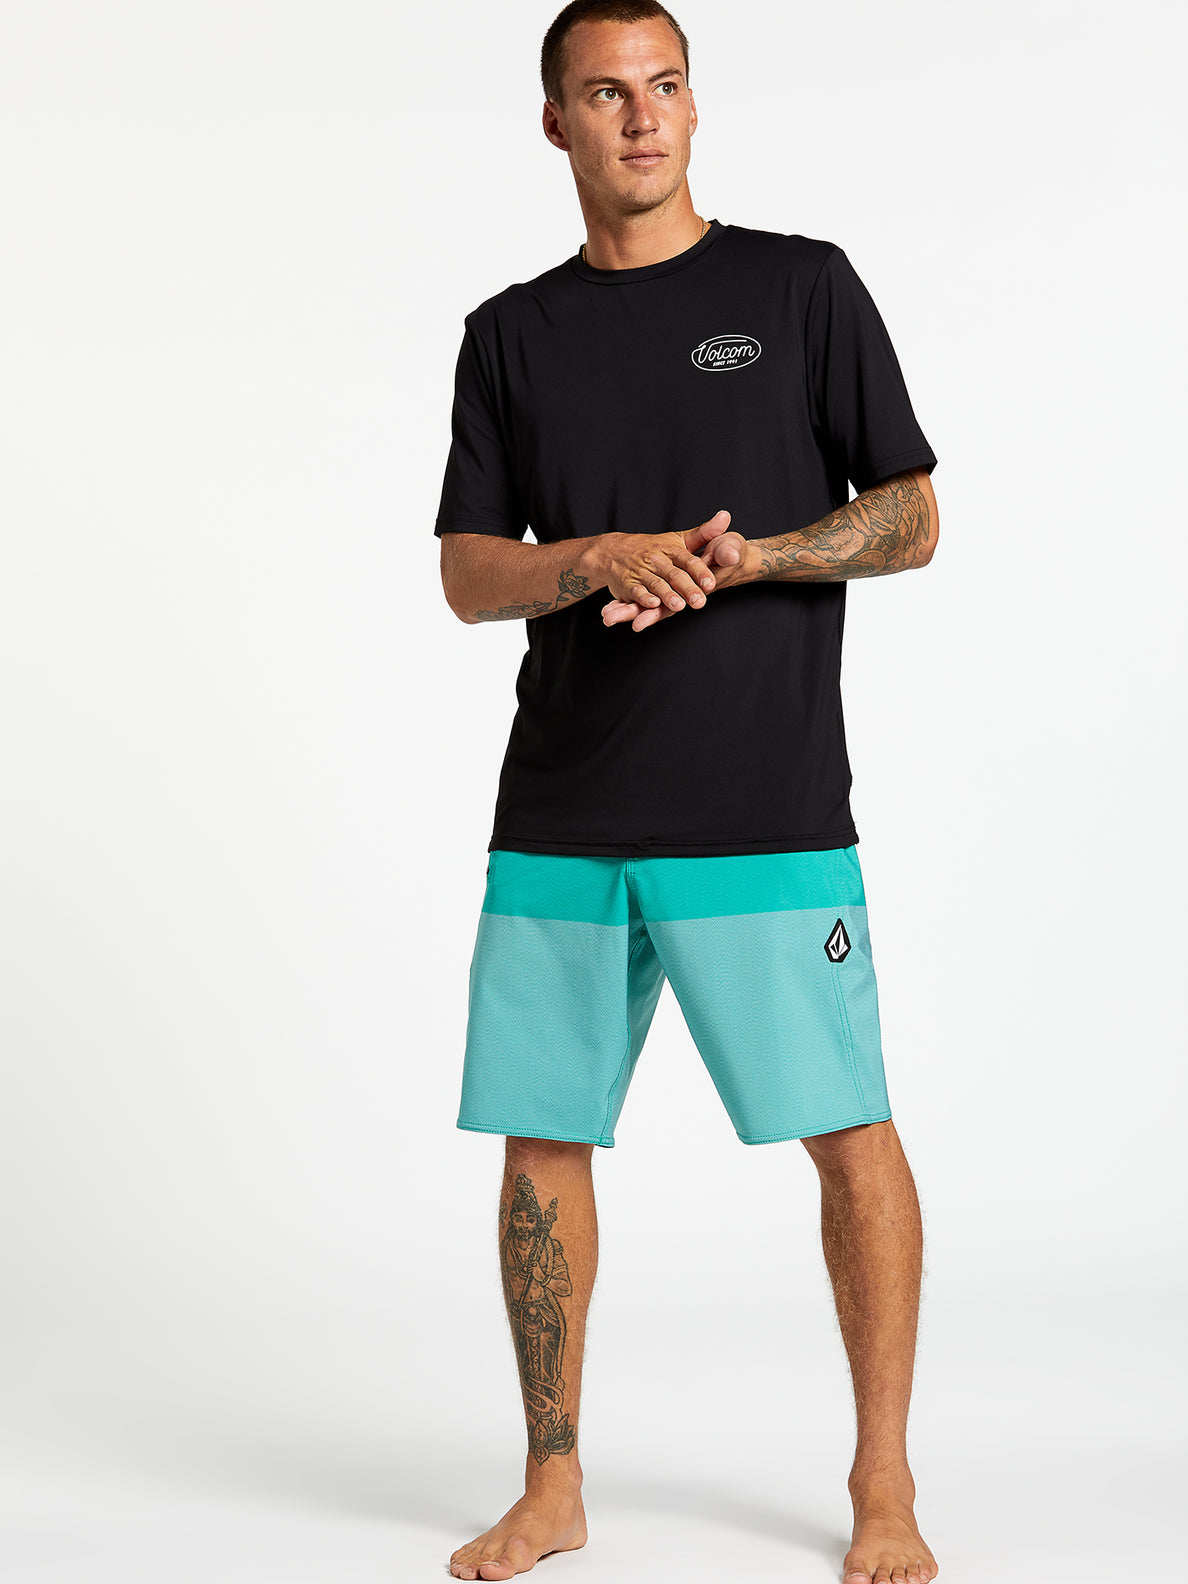 Lido Heather Mod-Tech Trunks - Mysto Green